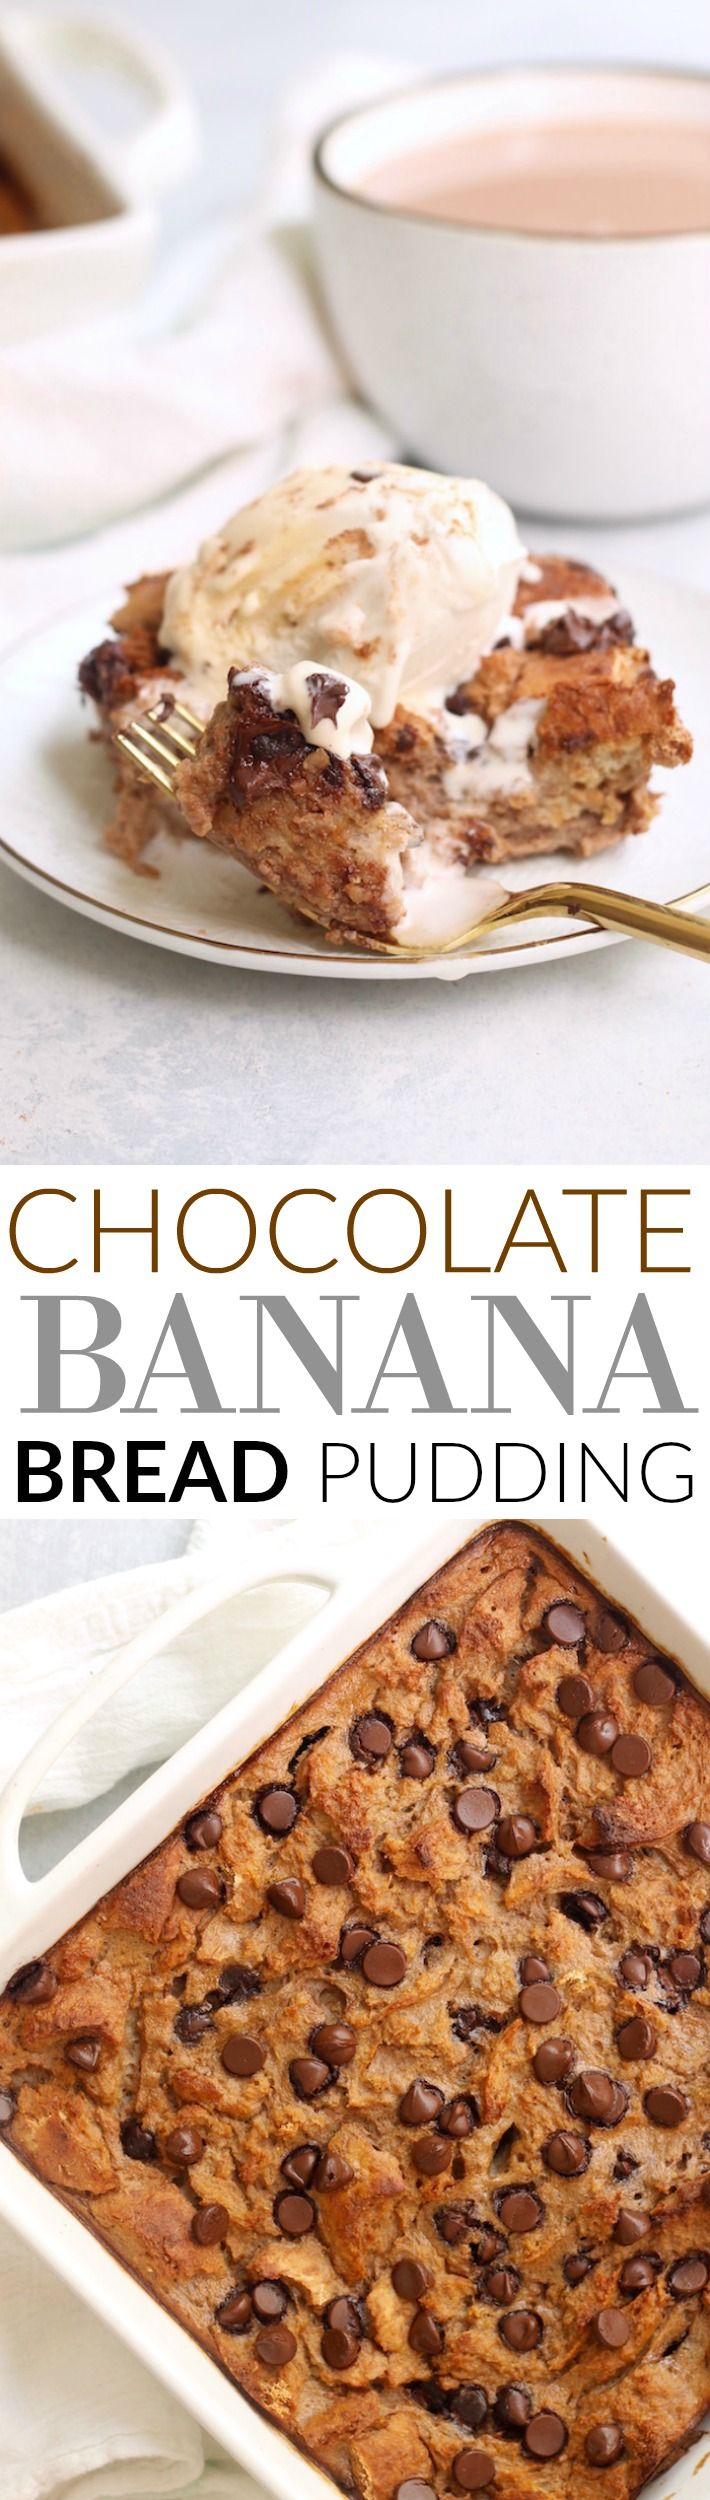 A super easy, tasty, and moist Chocolate Banana Bread Pudding made with ripe bananas, whole grain bread, and chocolate chips that the whole family will love!